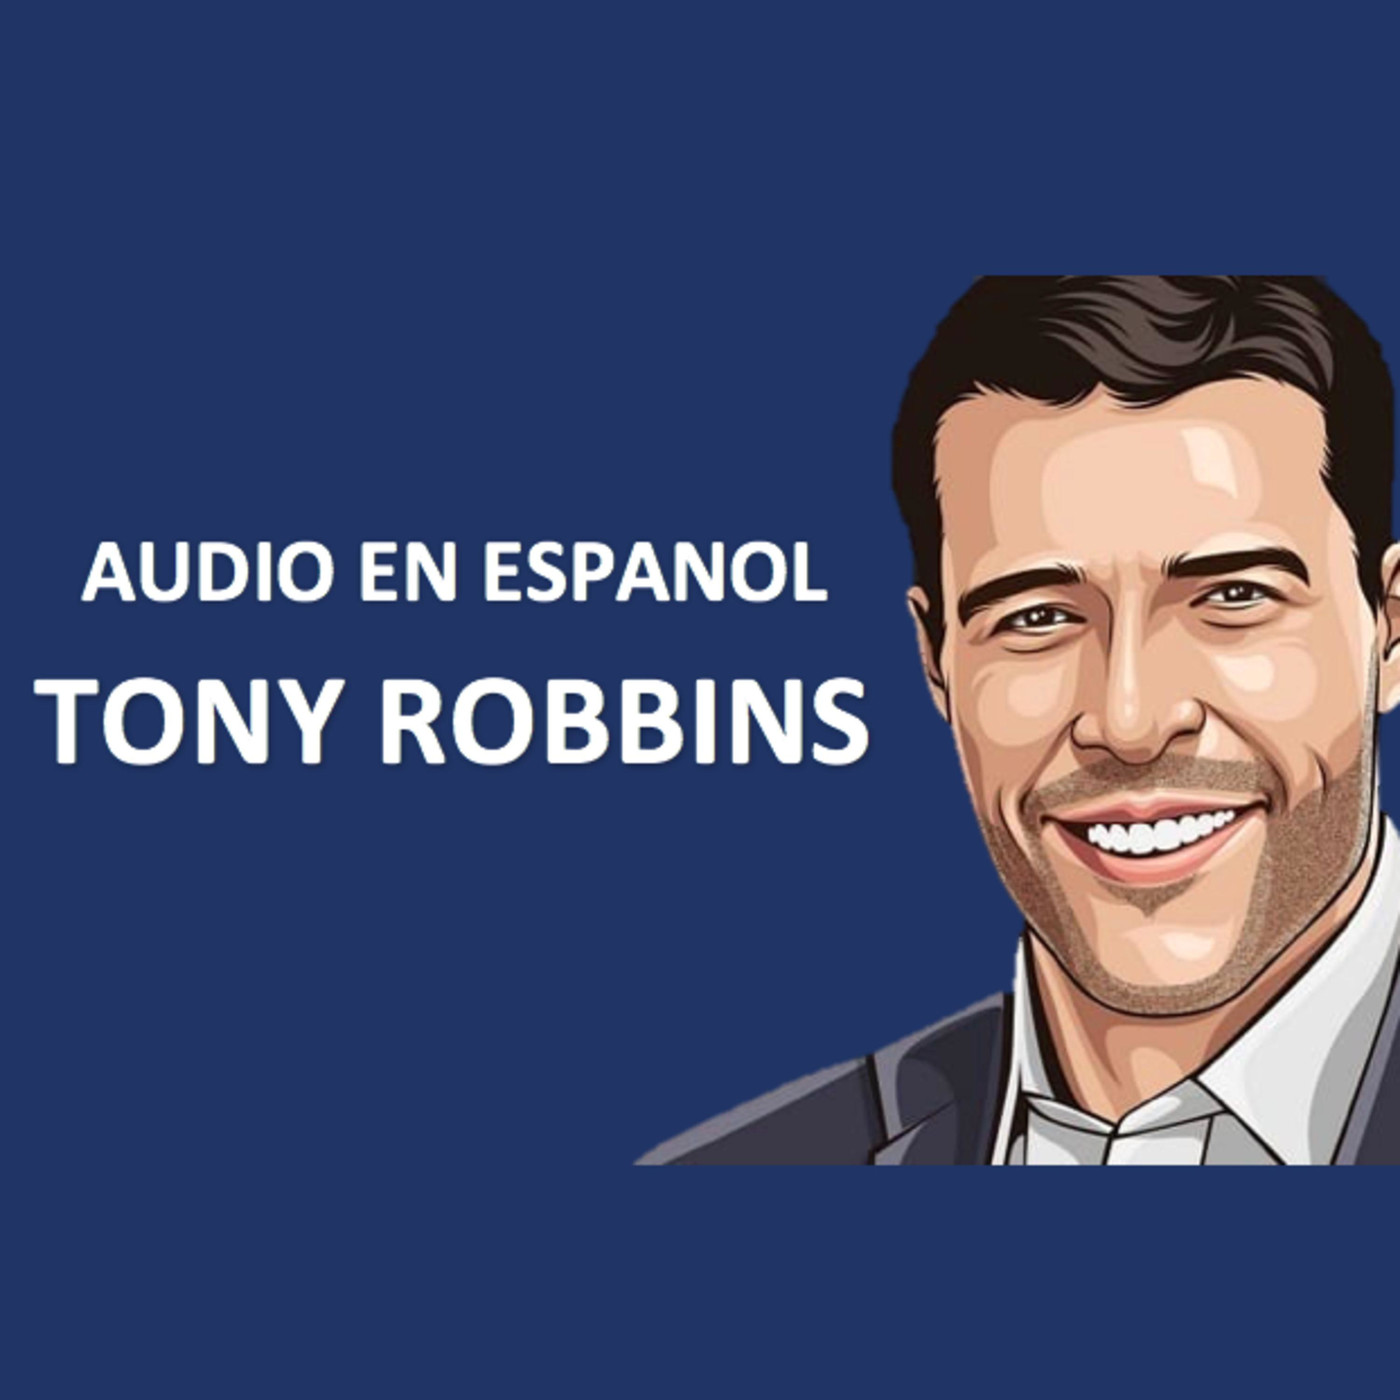 Audio en Español Tony Robbins